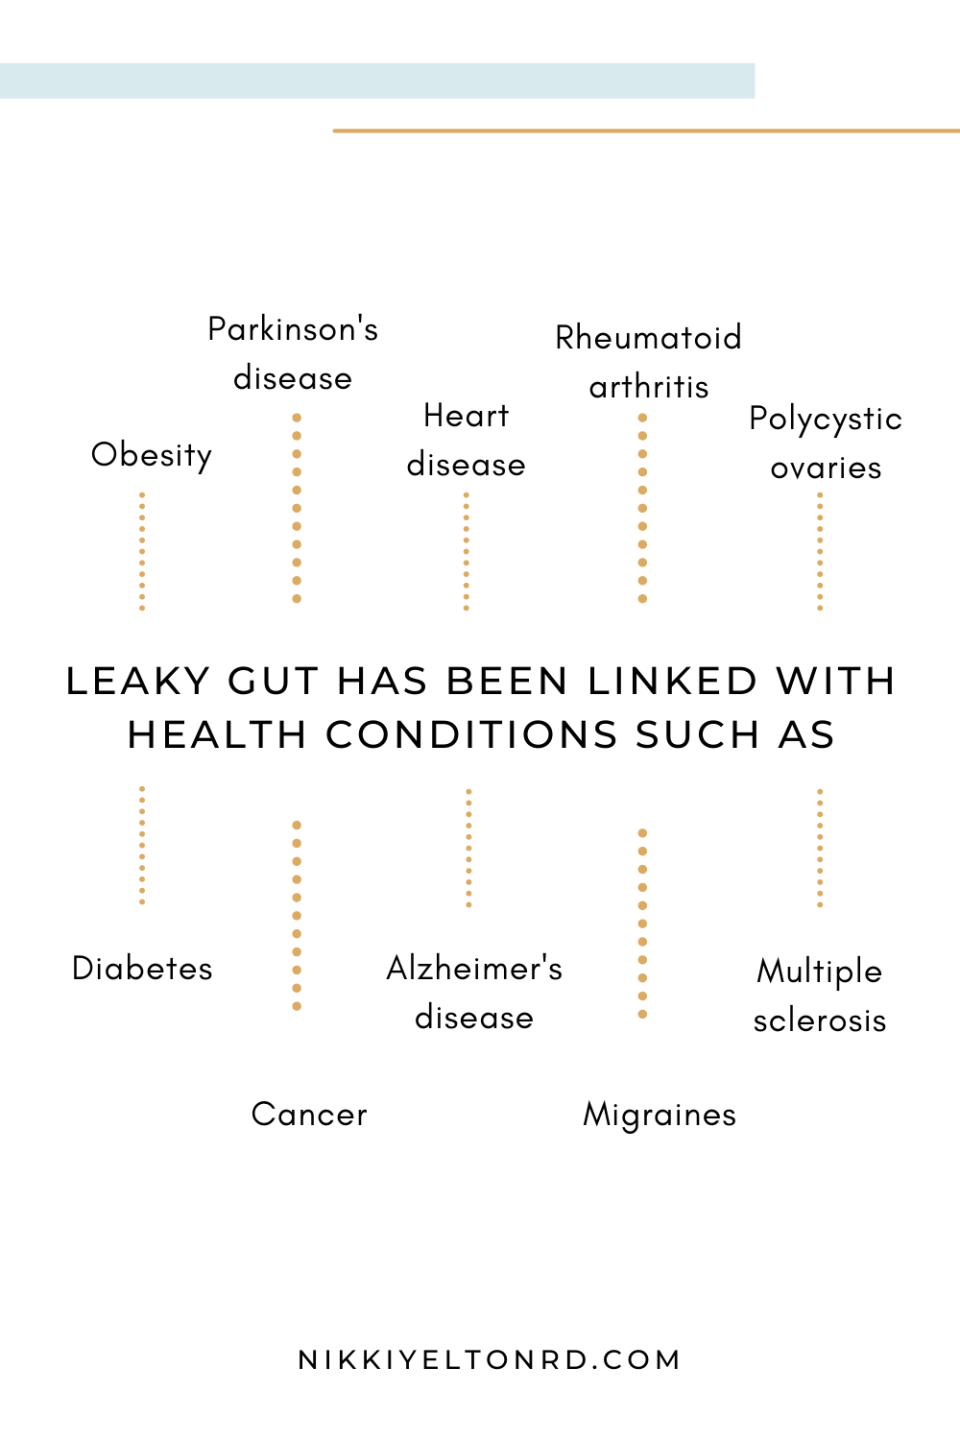 Health conditions such as diabetes, Alzheimers, and heart disease have been linked with leaky gut